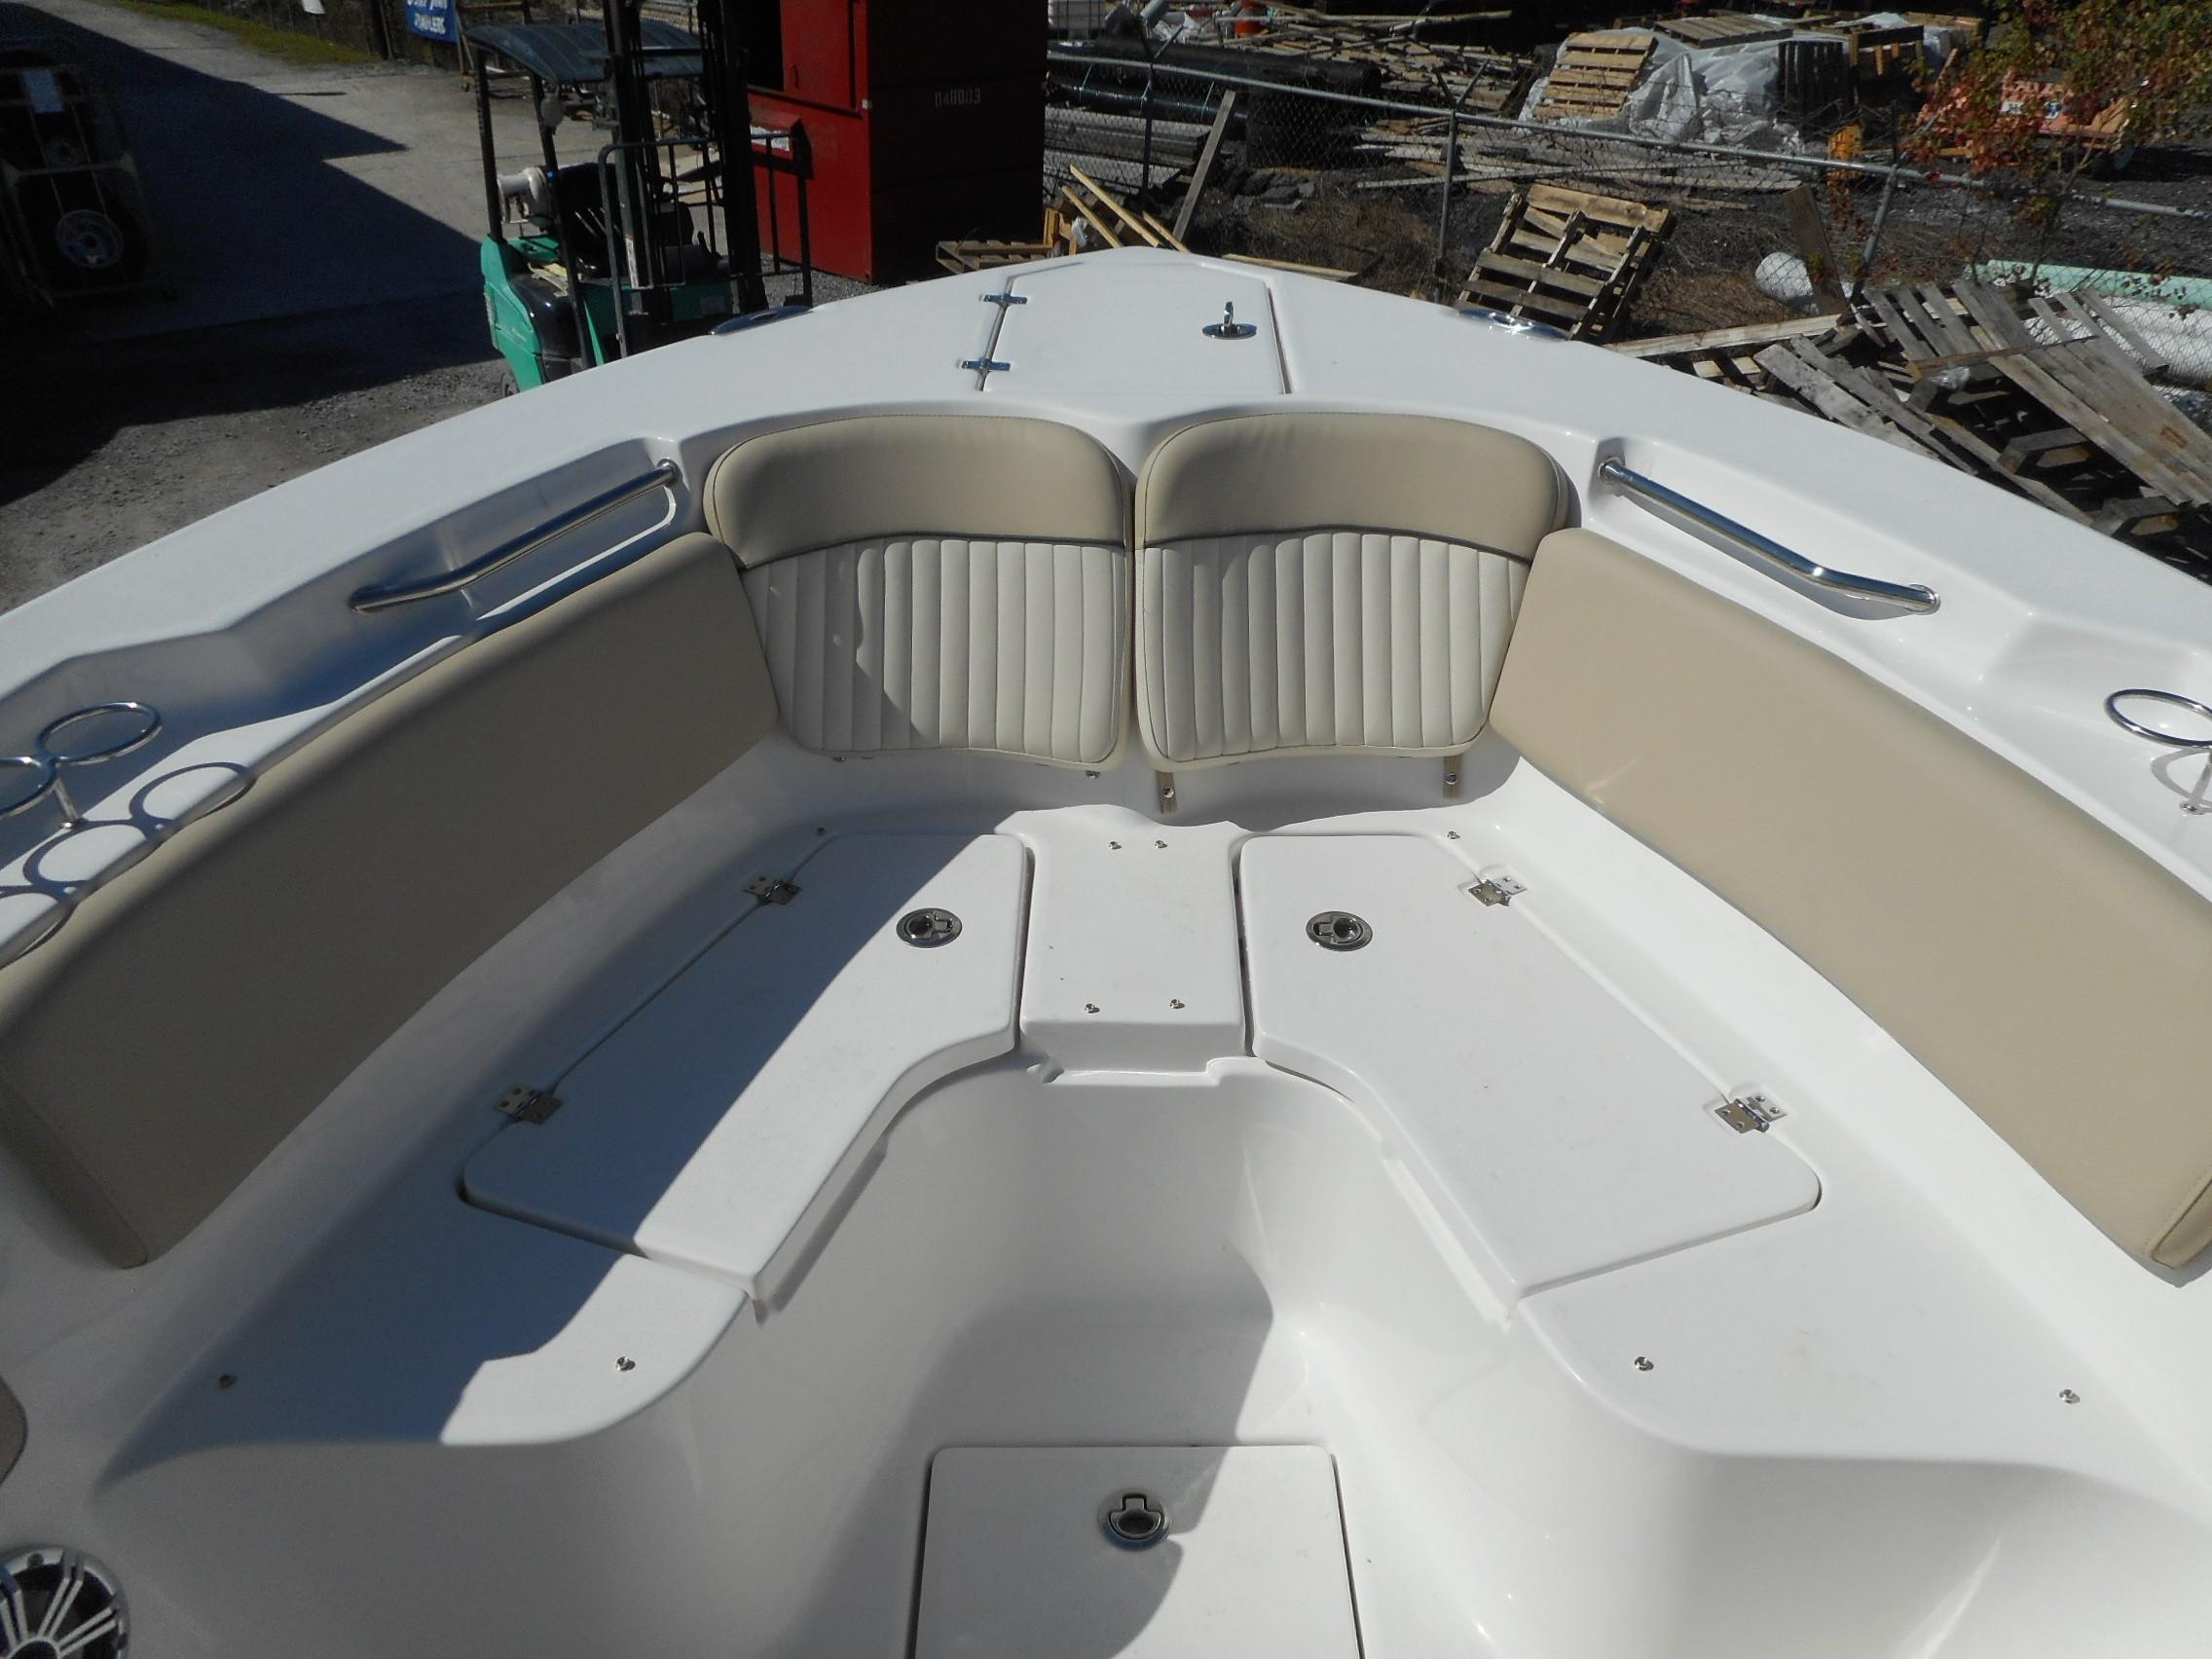 New  2019 26' Sea Fox 266 Commander Center Console in Slidell, Louisiana